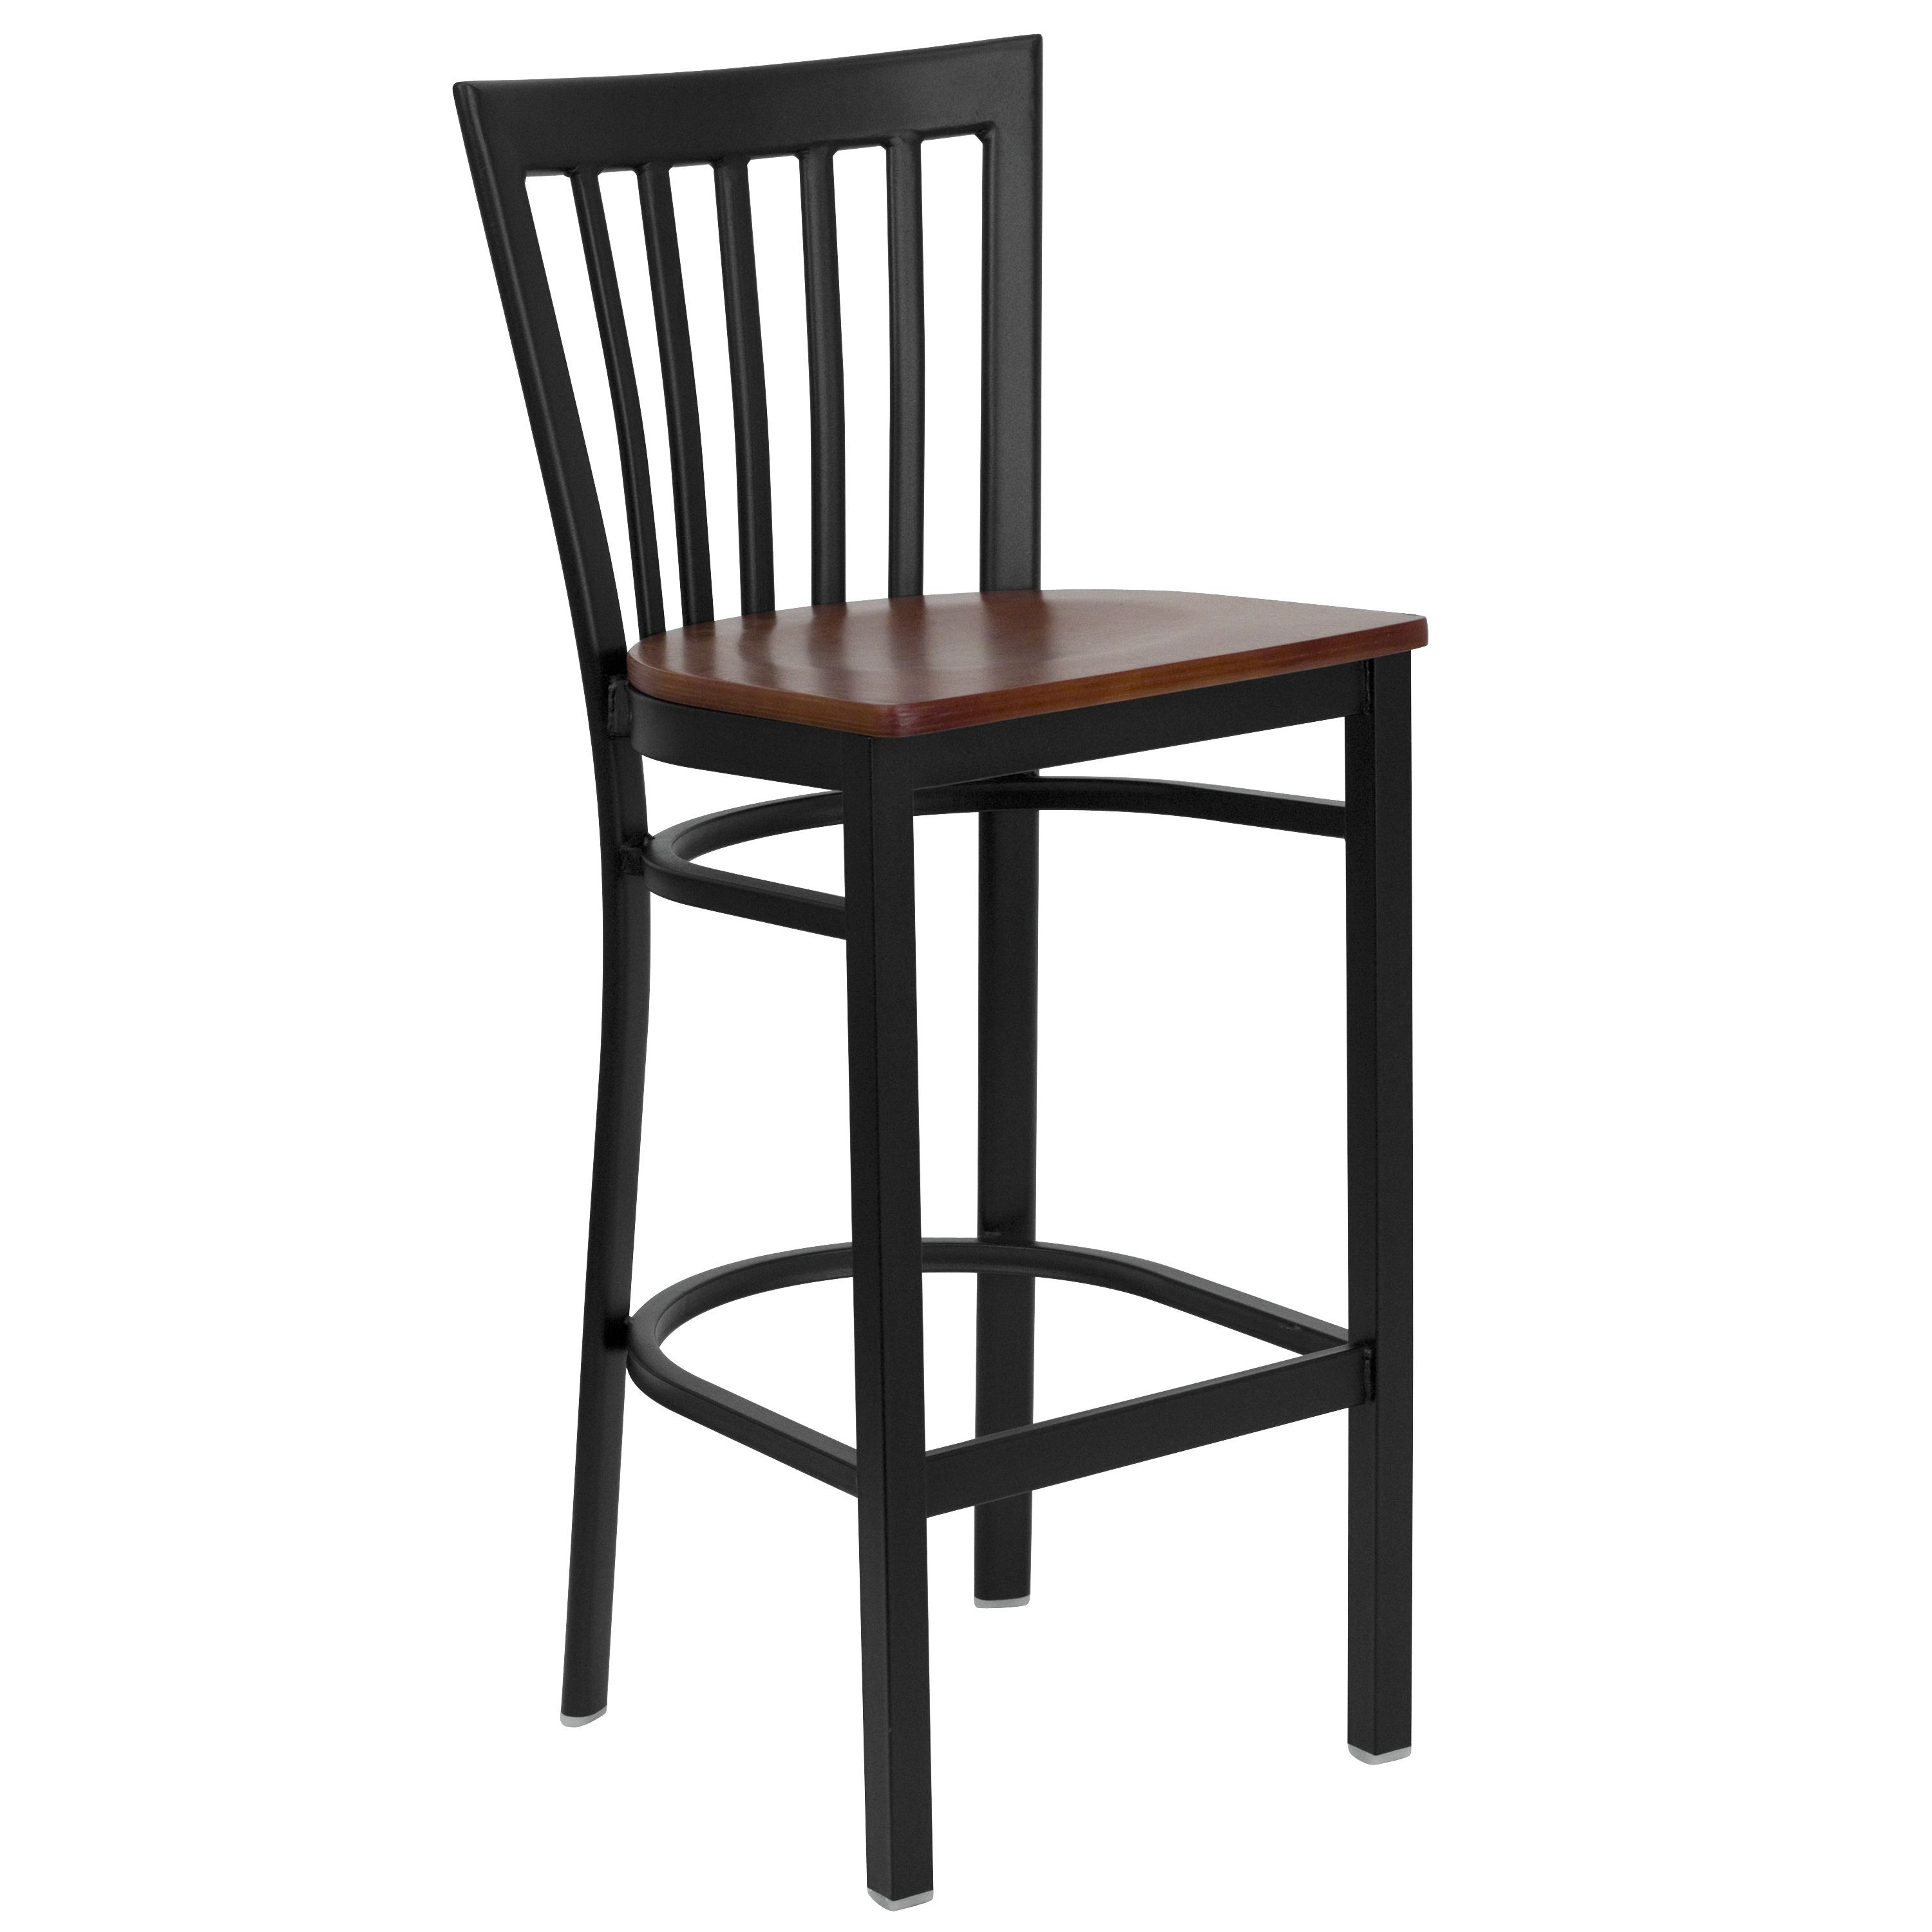 Flash Furniture XU-DG6R8BSCH-BAR-CHYW-GG Black Schoolhouse Back Metal Bar Stool with Cherry Wood Seat